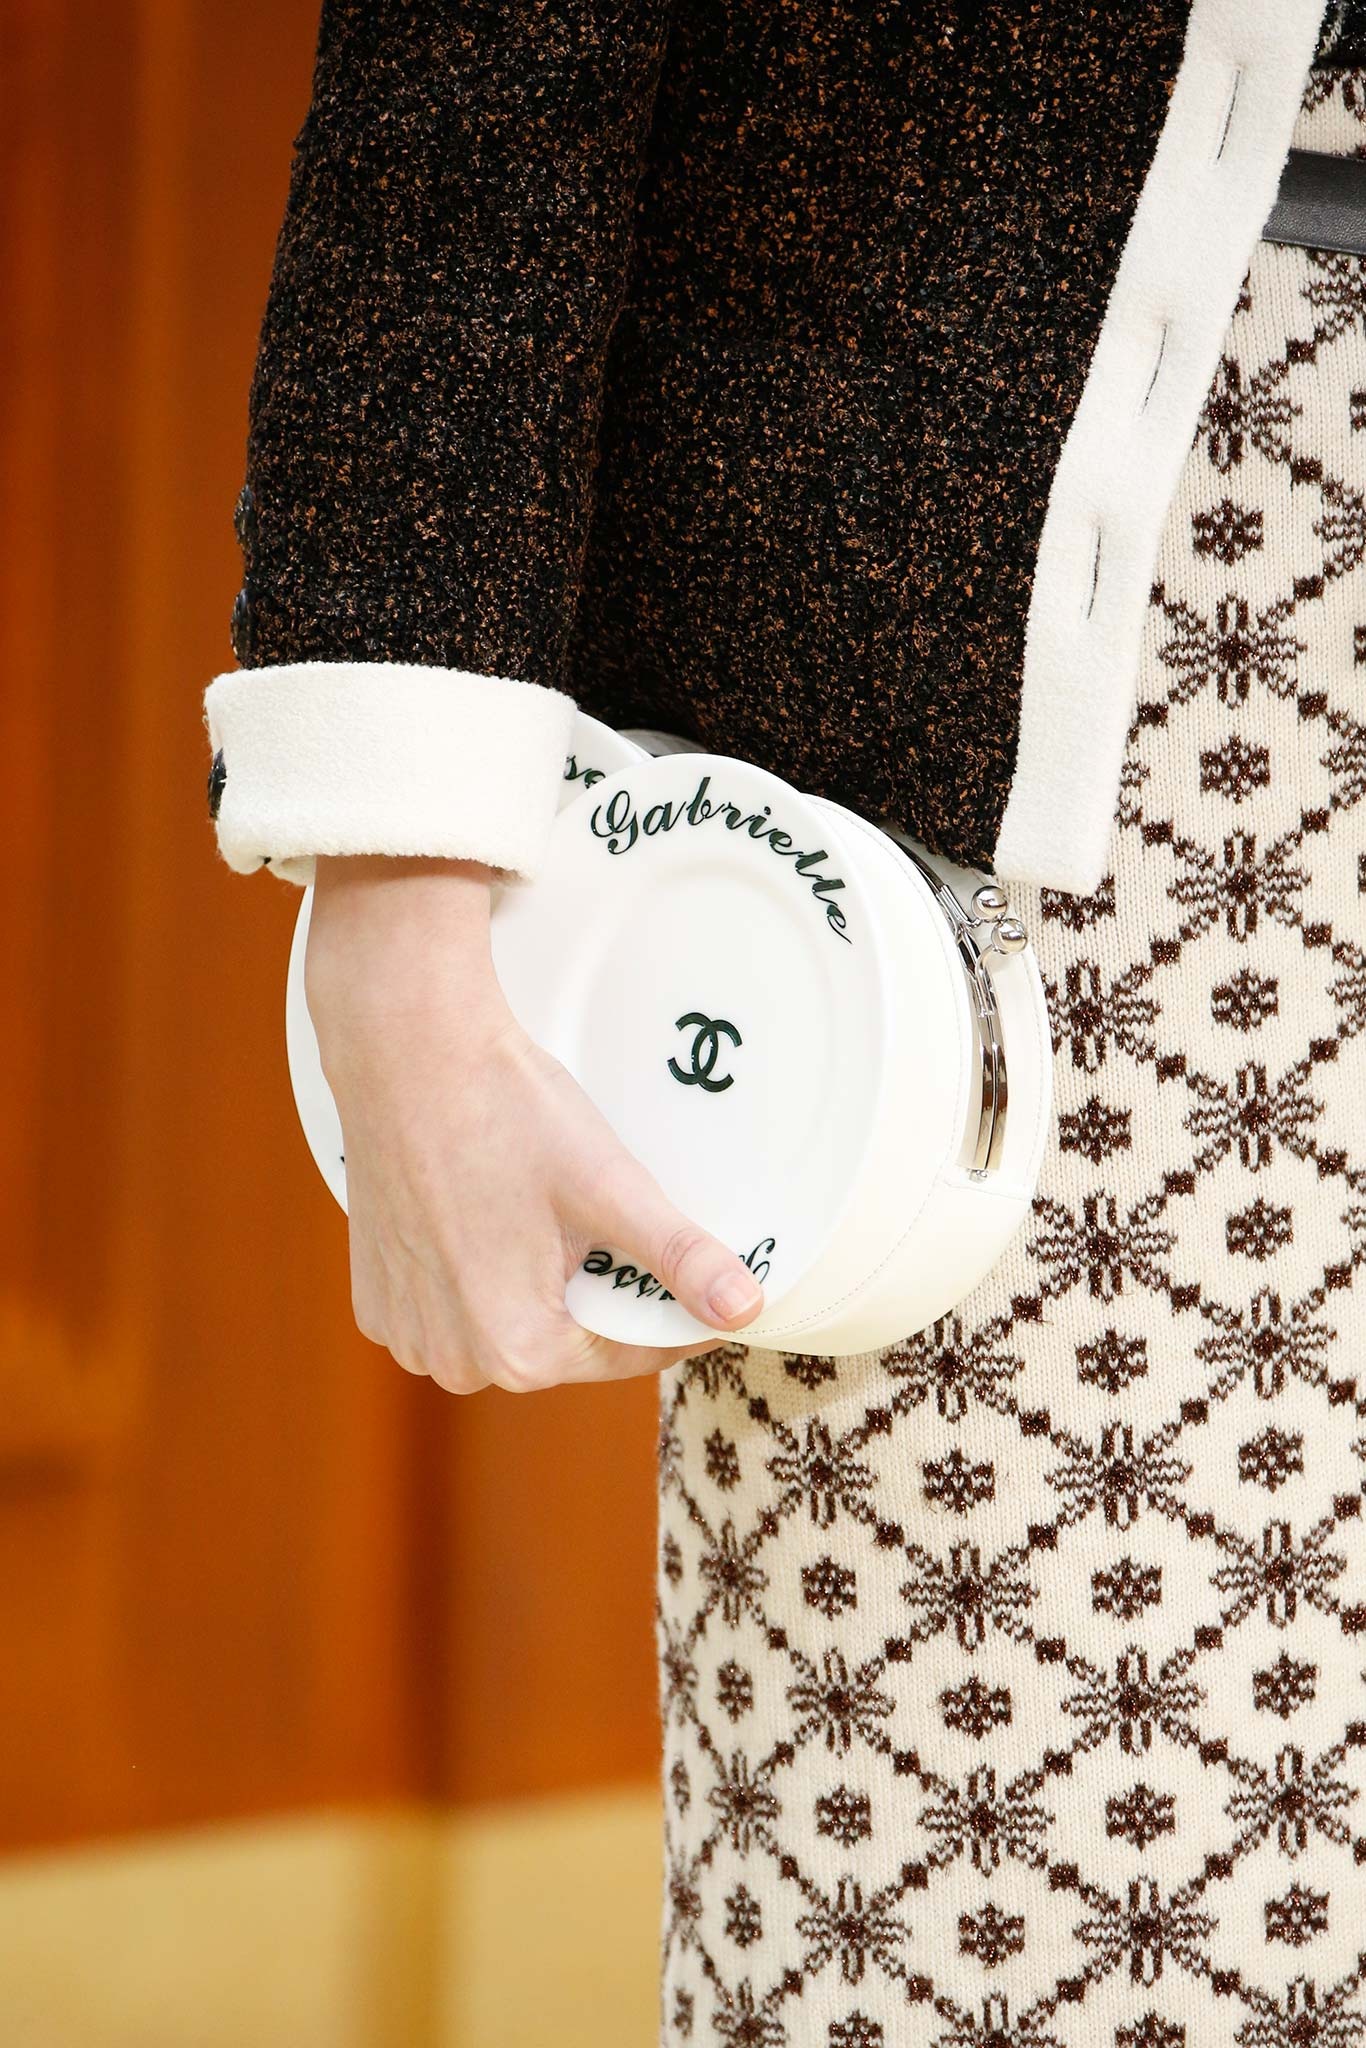 Chanel Clutch Bag 2015 Chanel White Plate Clutch Bag